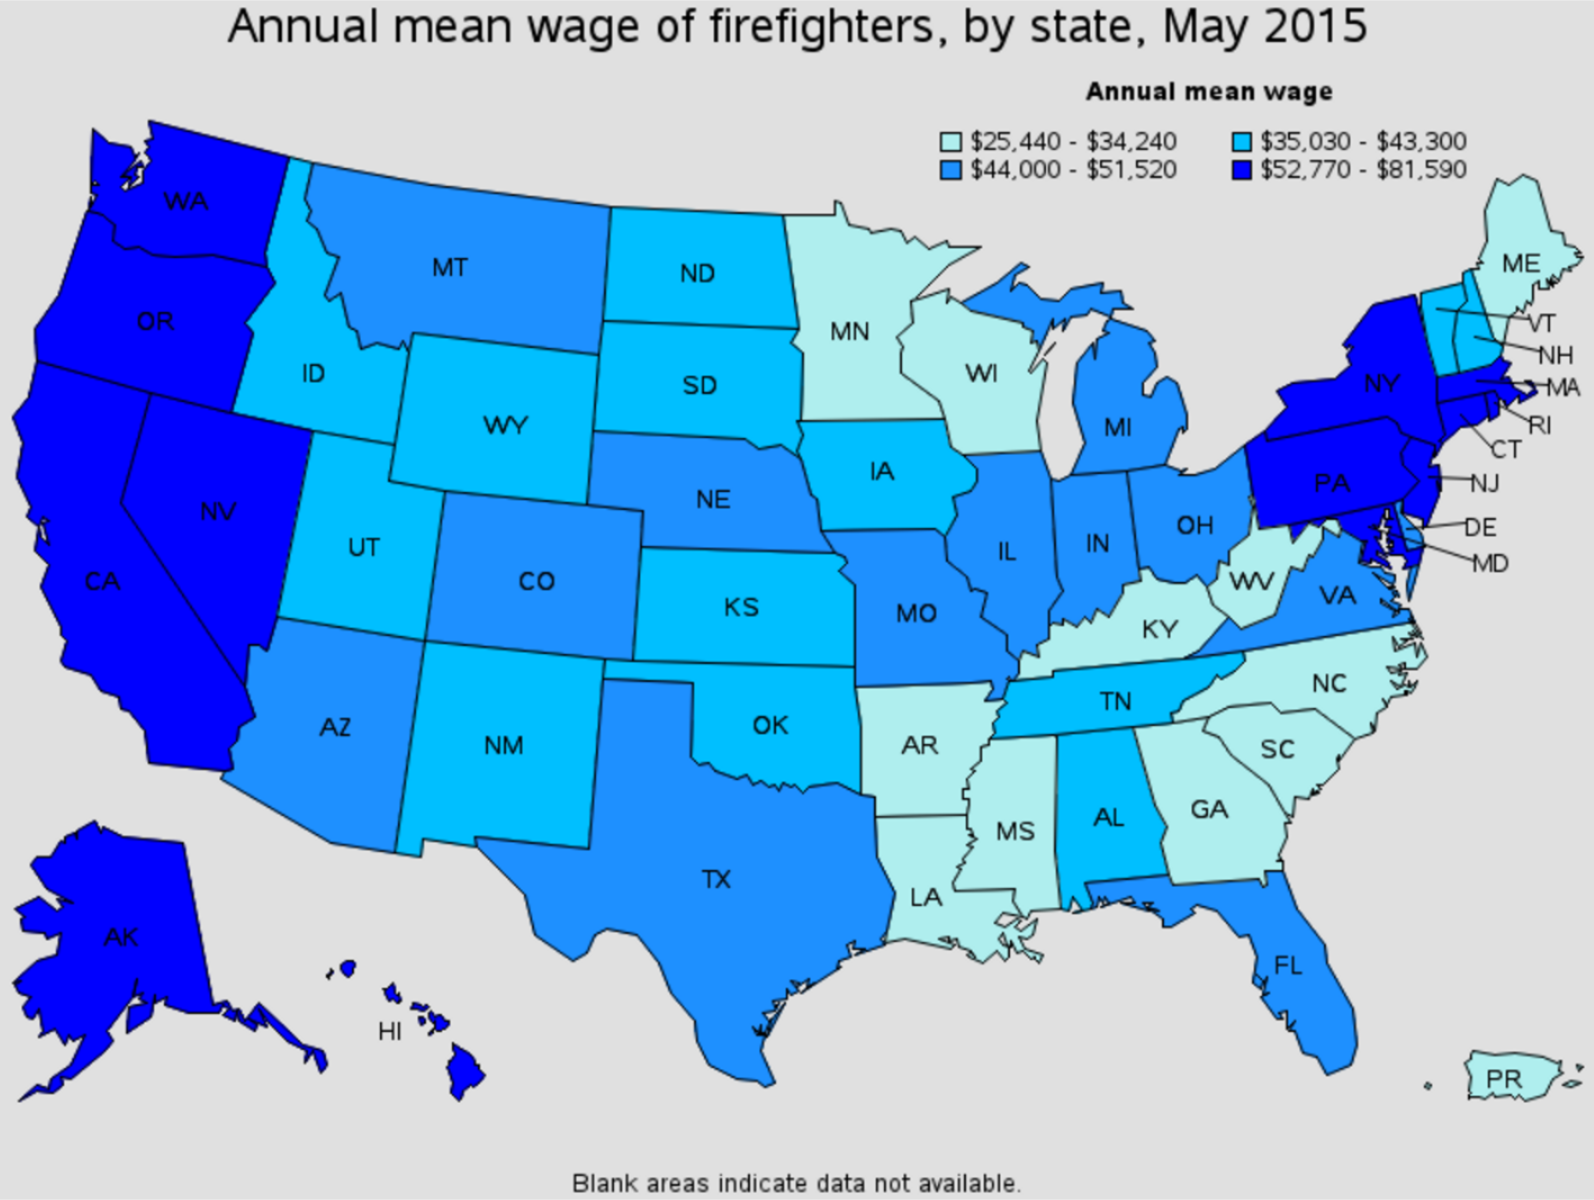 firefighter average salary by state Pueblo Colorado